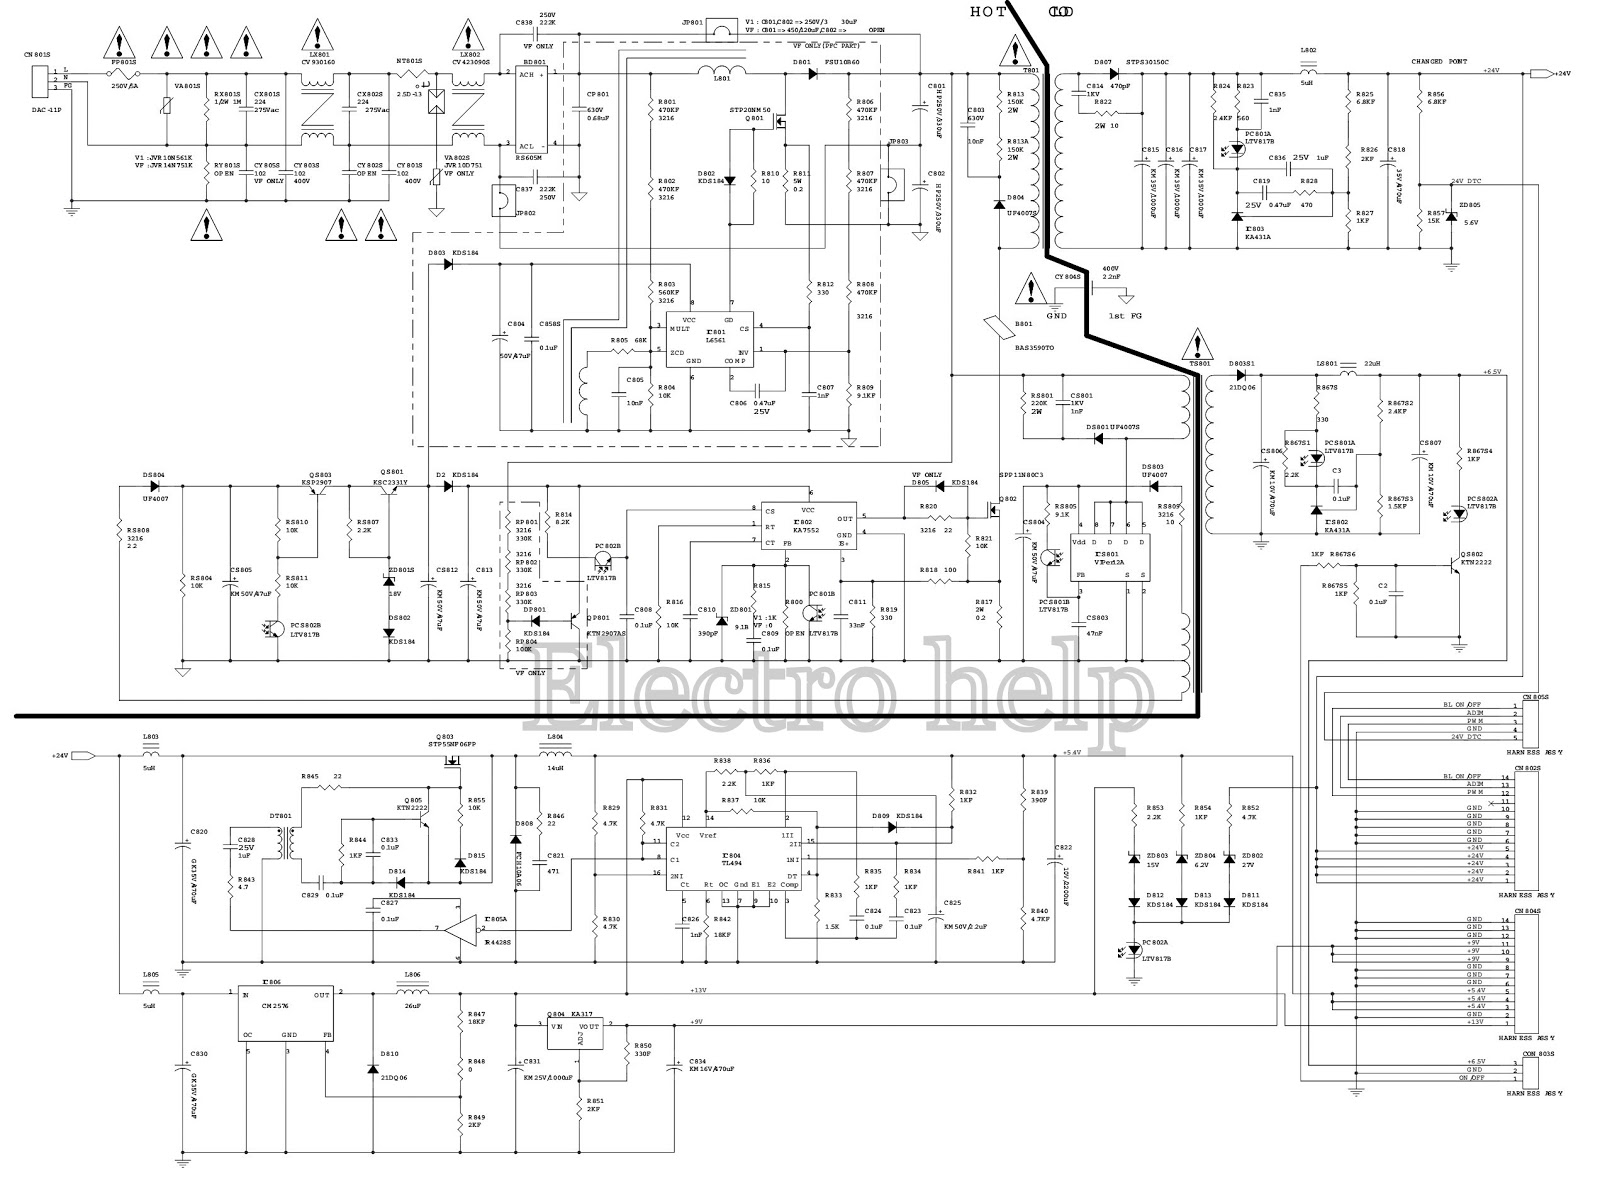 philips tv circuit diagram how to repair led tv backlight problem no picture [ 1600 x 1188 Pixel ]